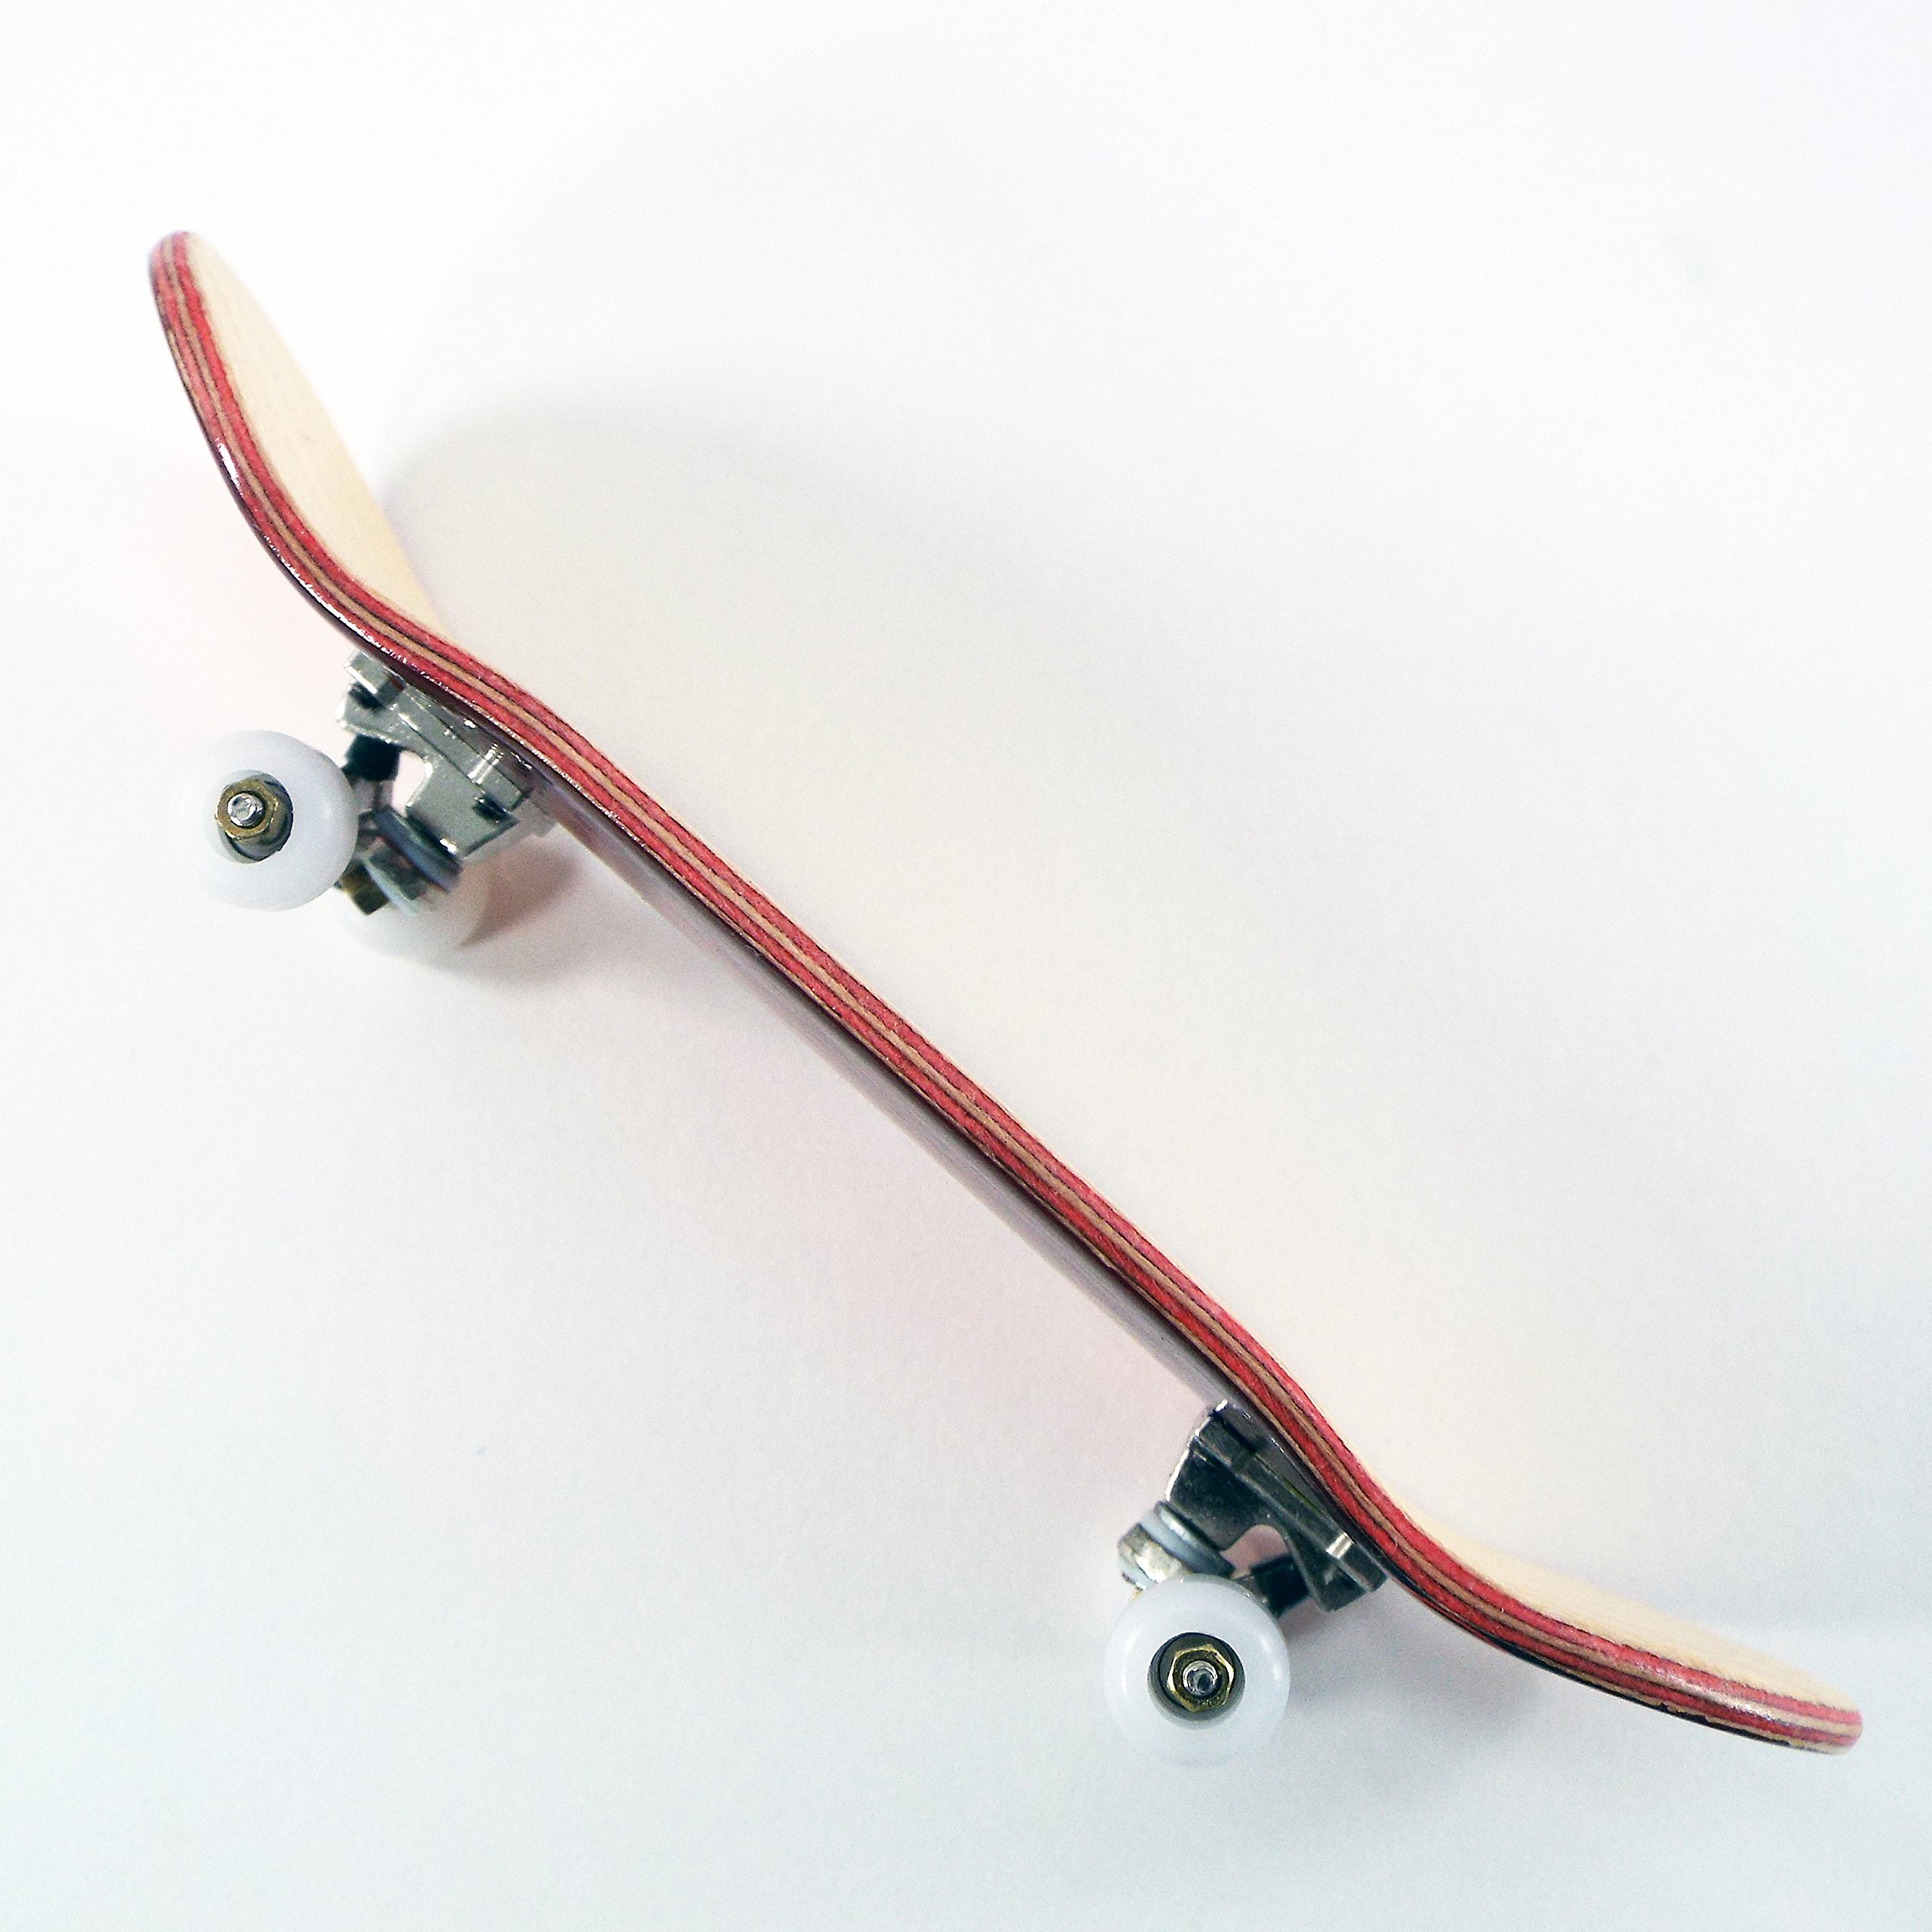 P-Rep Fired Up 30mm Graphic Complete Wooden Fingerboard w CNC Lathed Bearing Wheels by Peoples Republic by Broken Knuckle Fingerboards (Image #3)